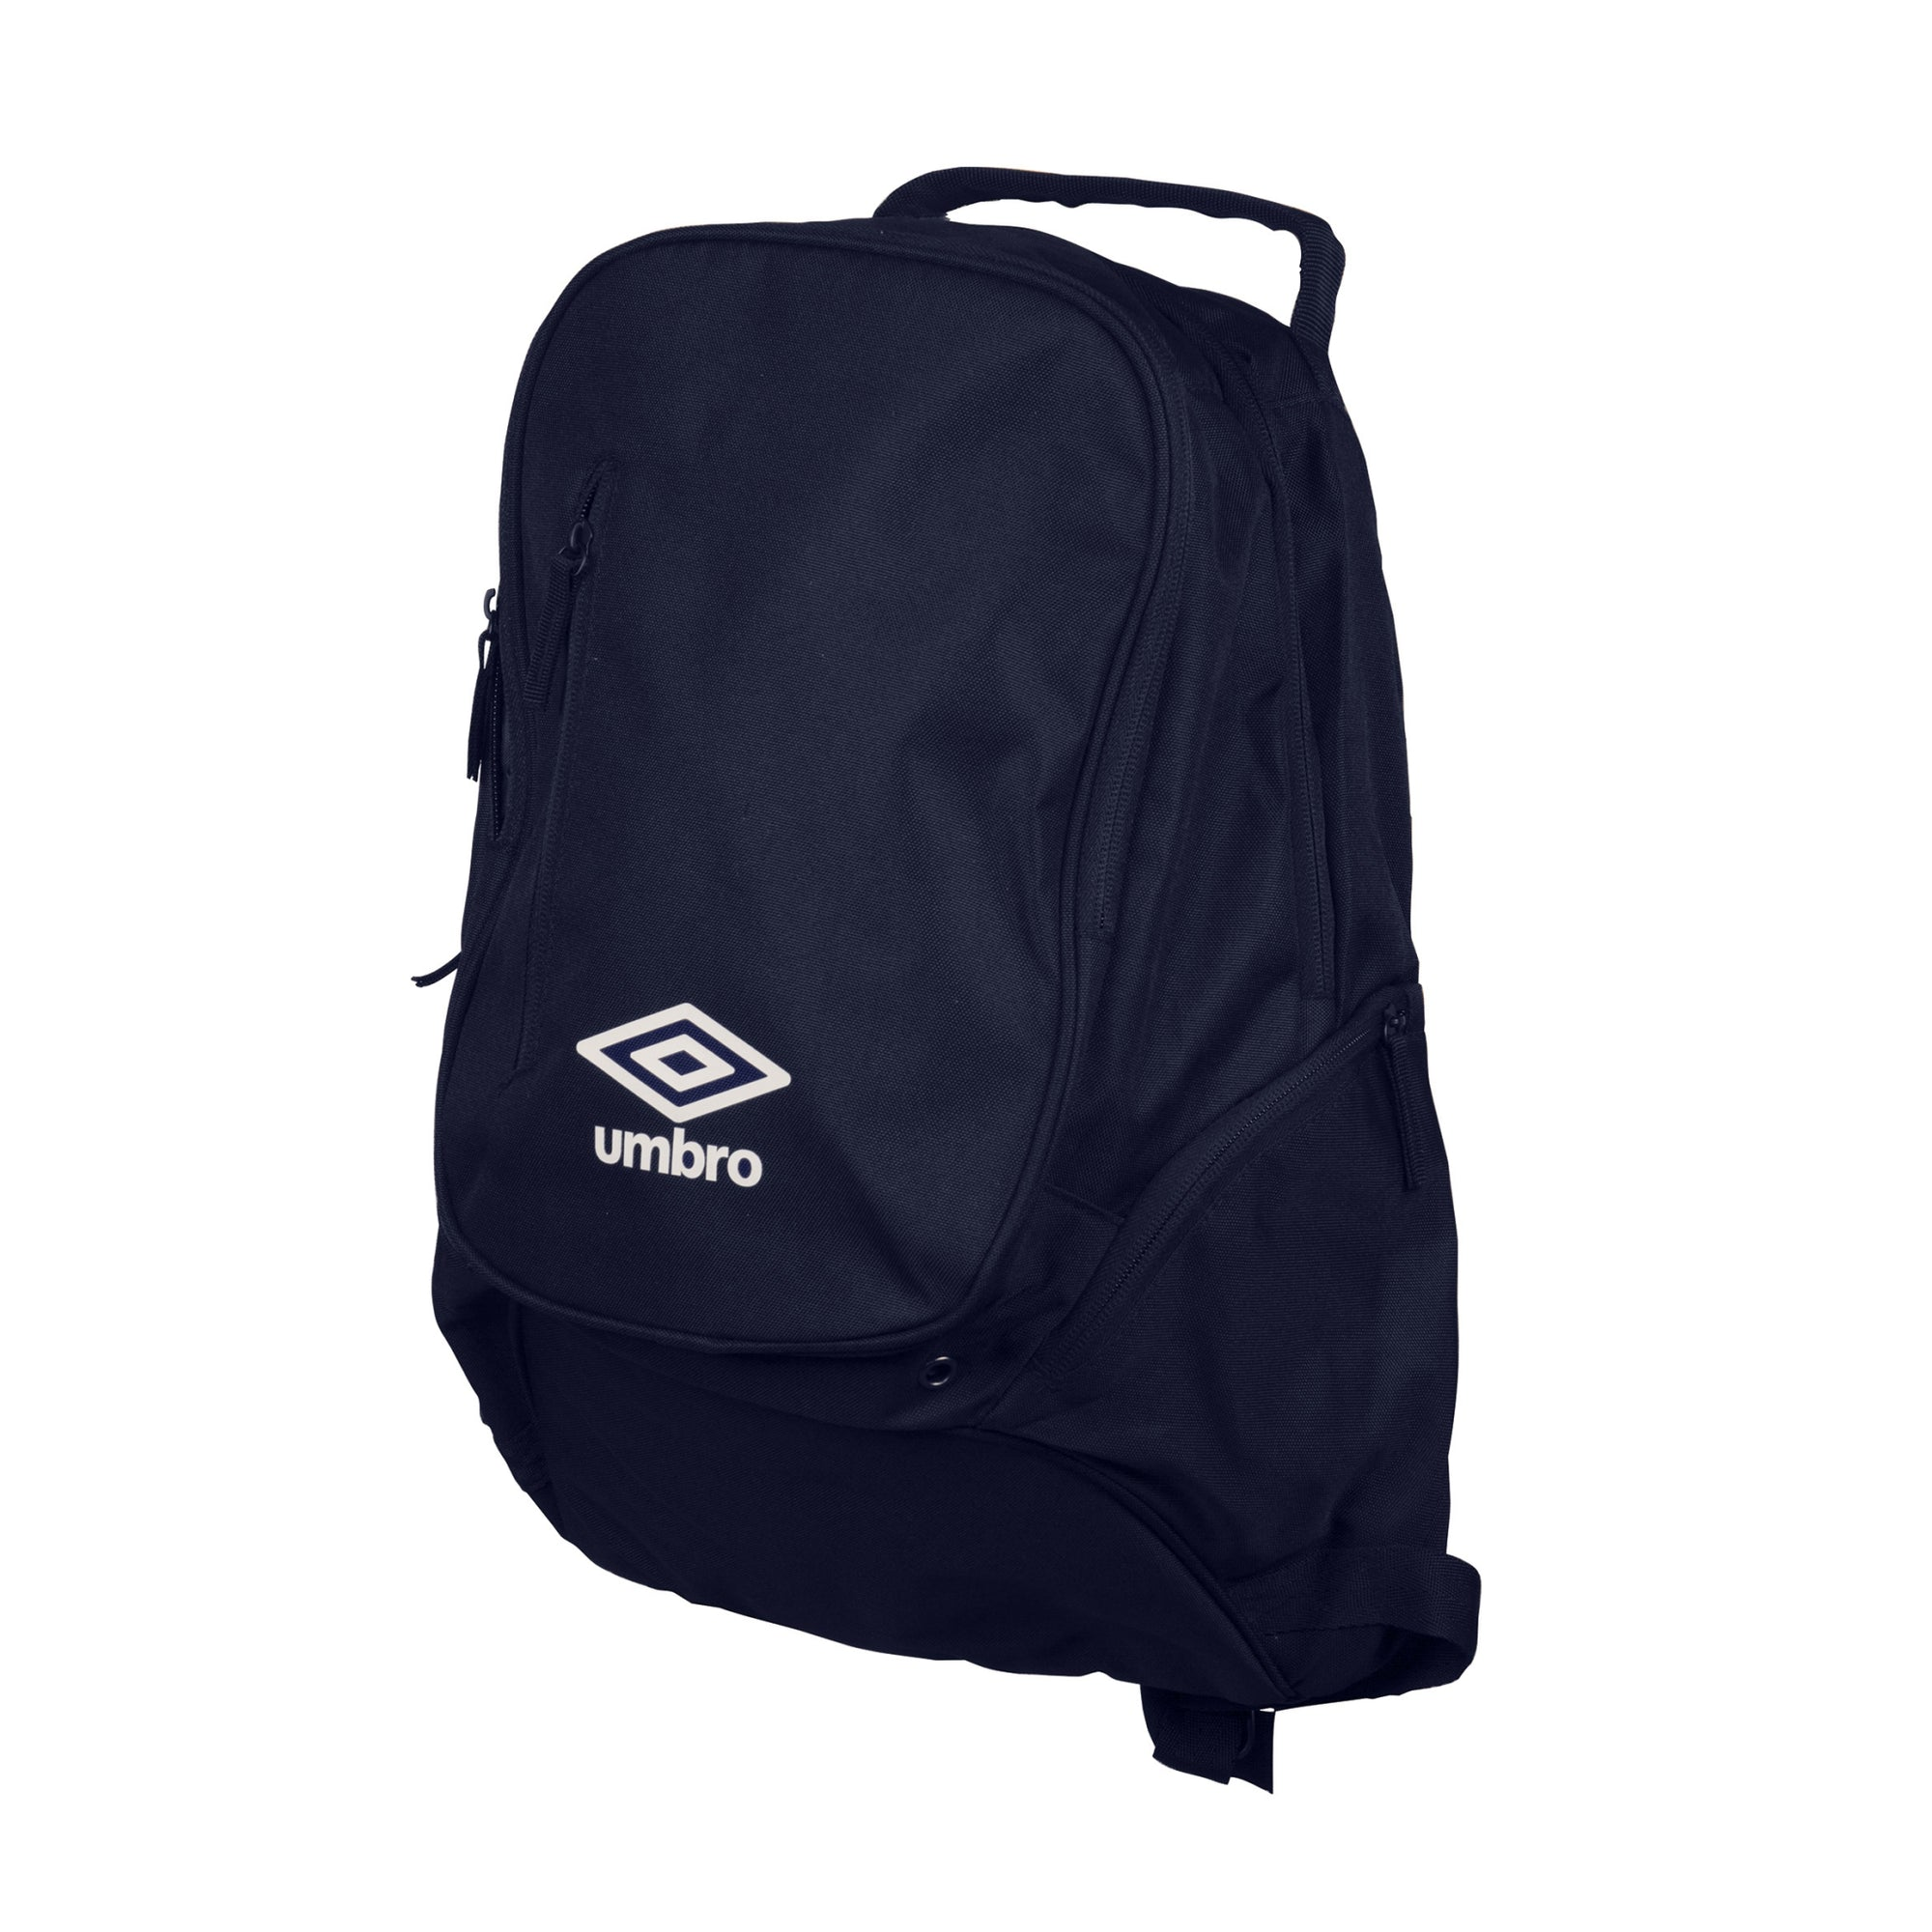 Umbro Large Backpack in navy with white Logo to the front. 2 side pockets.